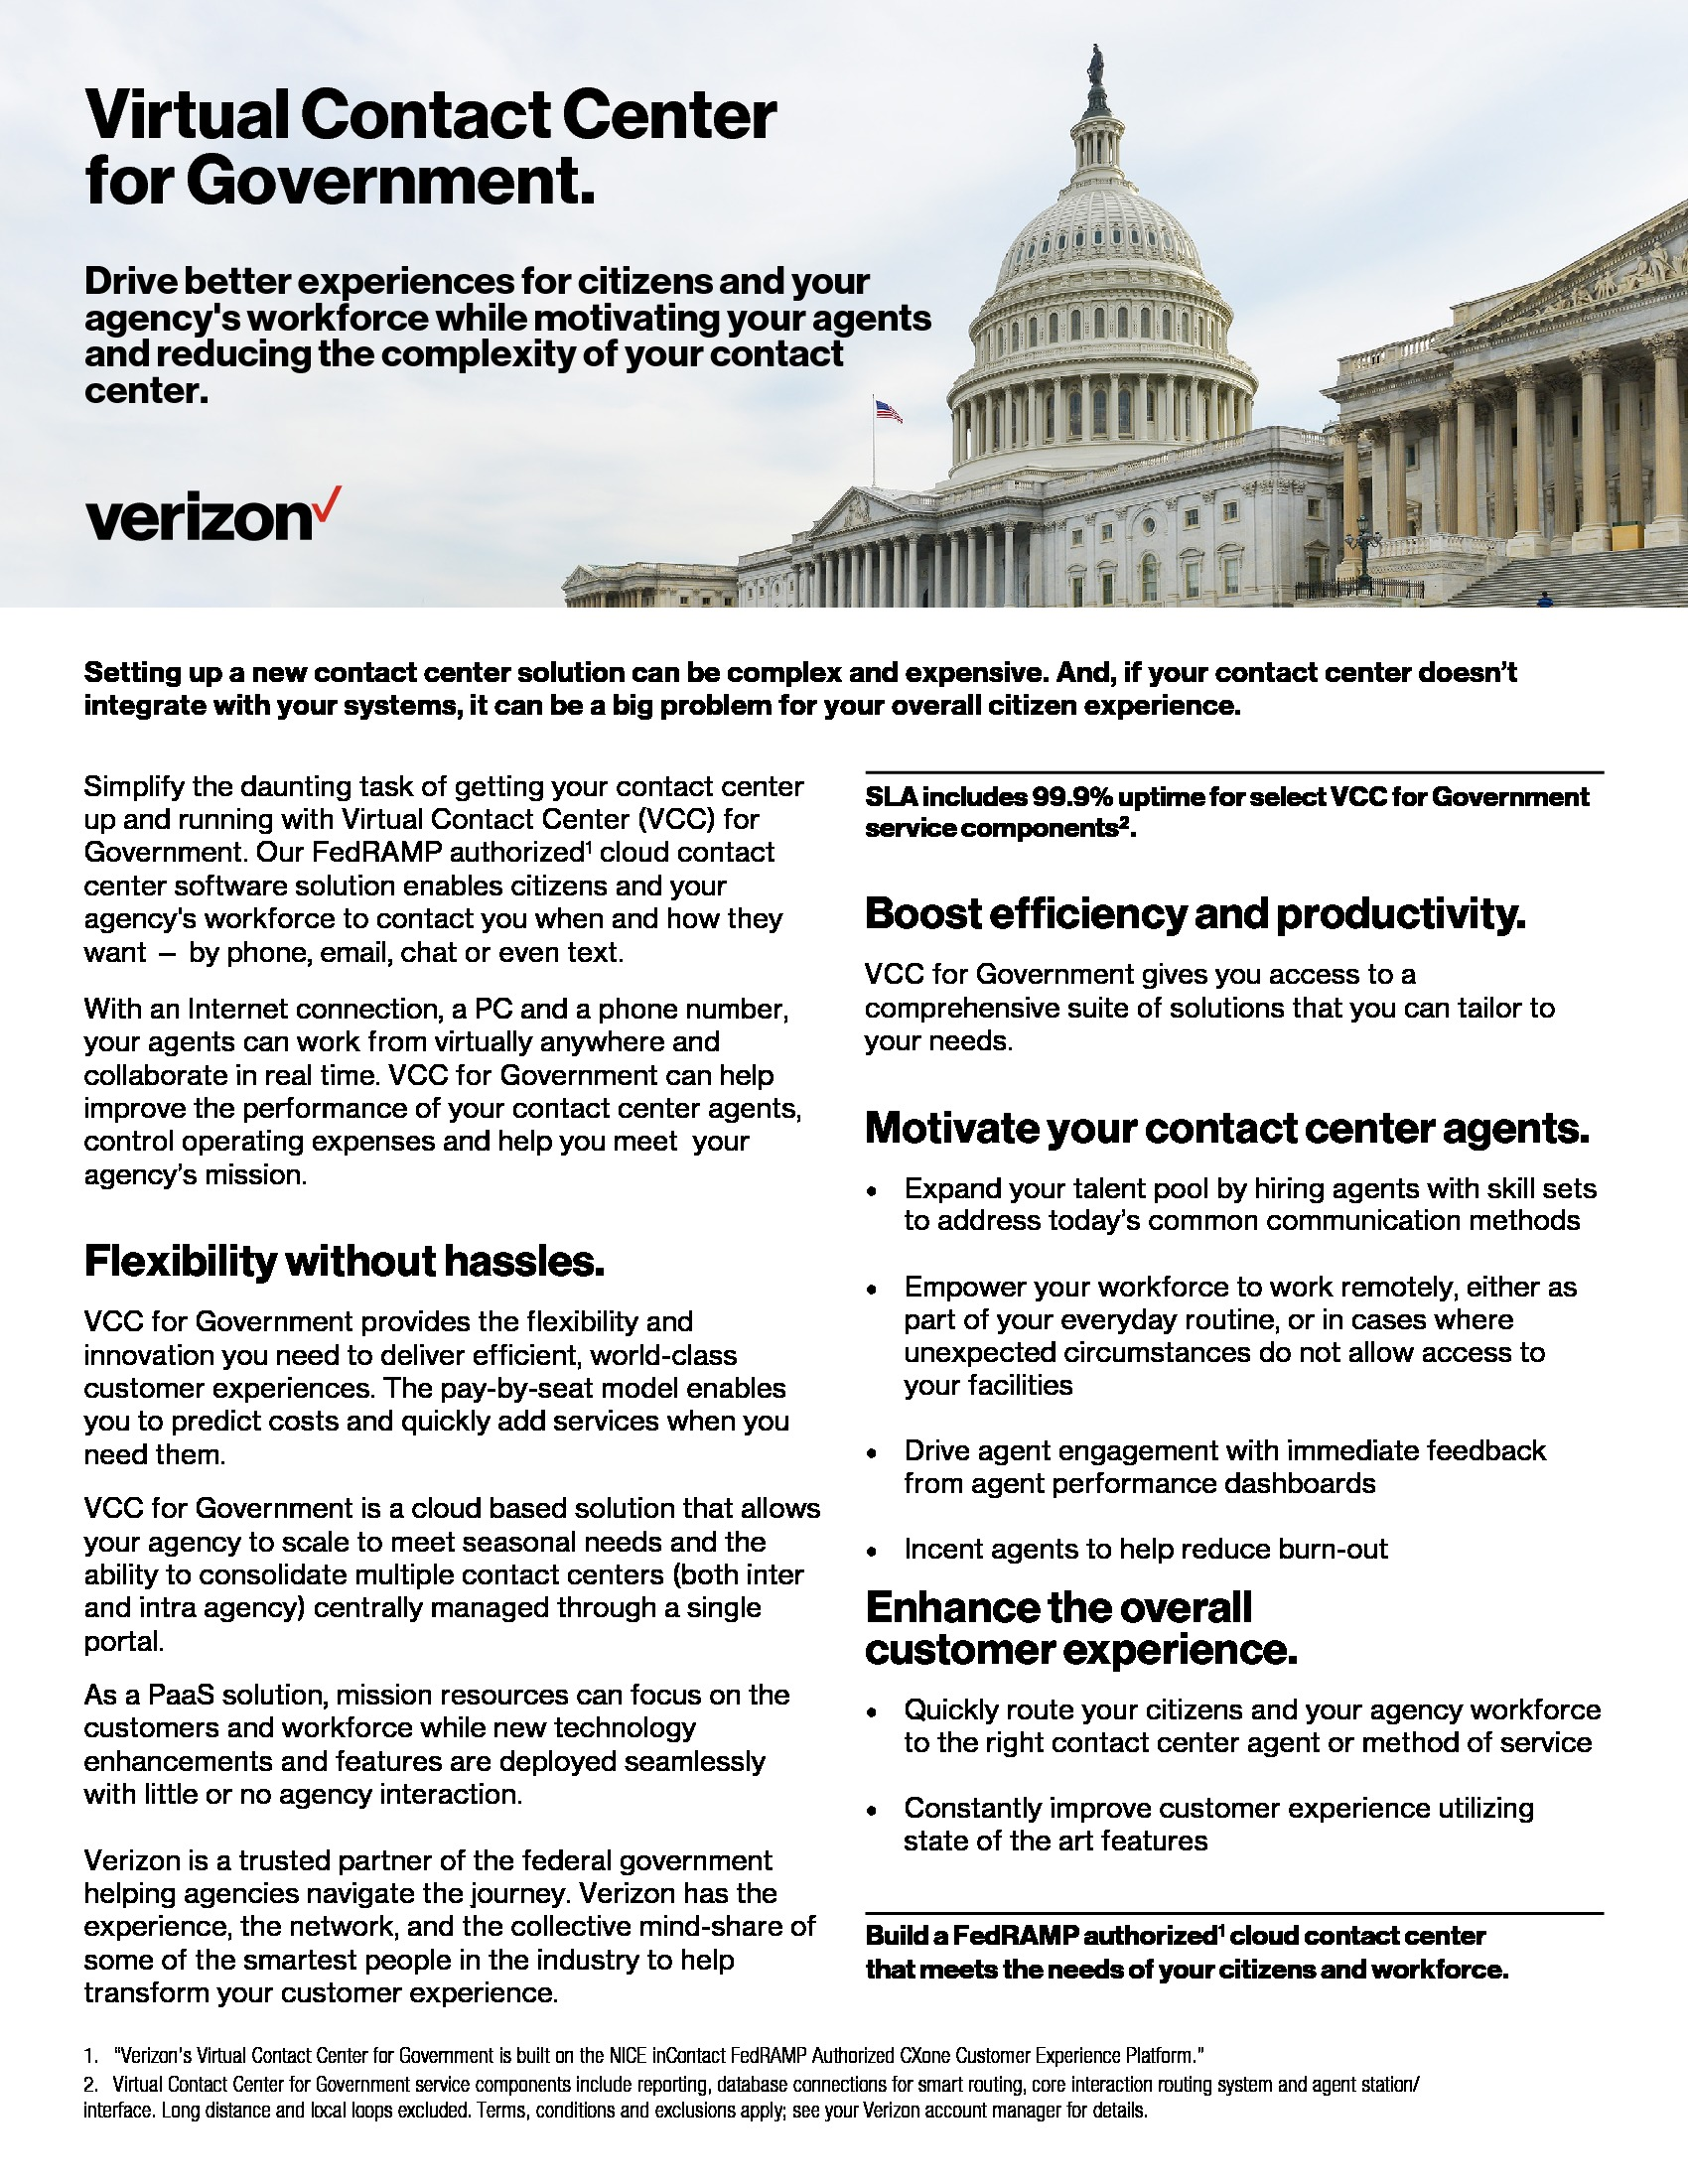 GT - Verizon - Client Supplied - 191001 - Virtual Contact Center for Government